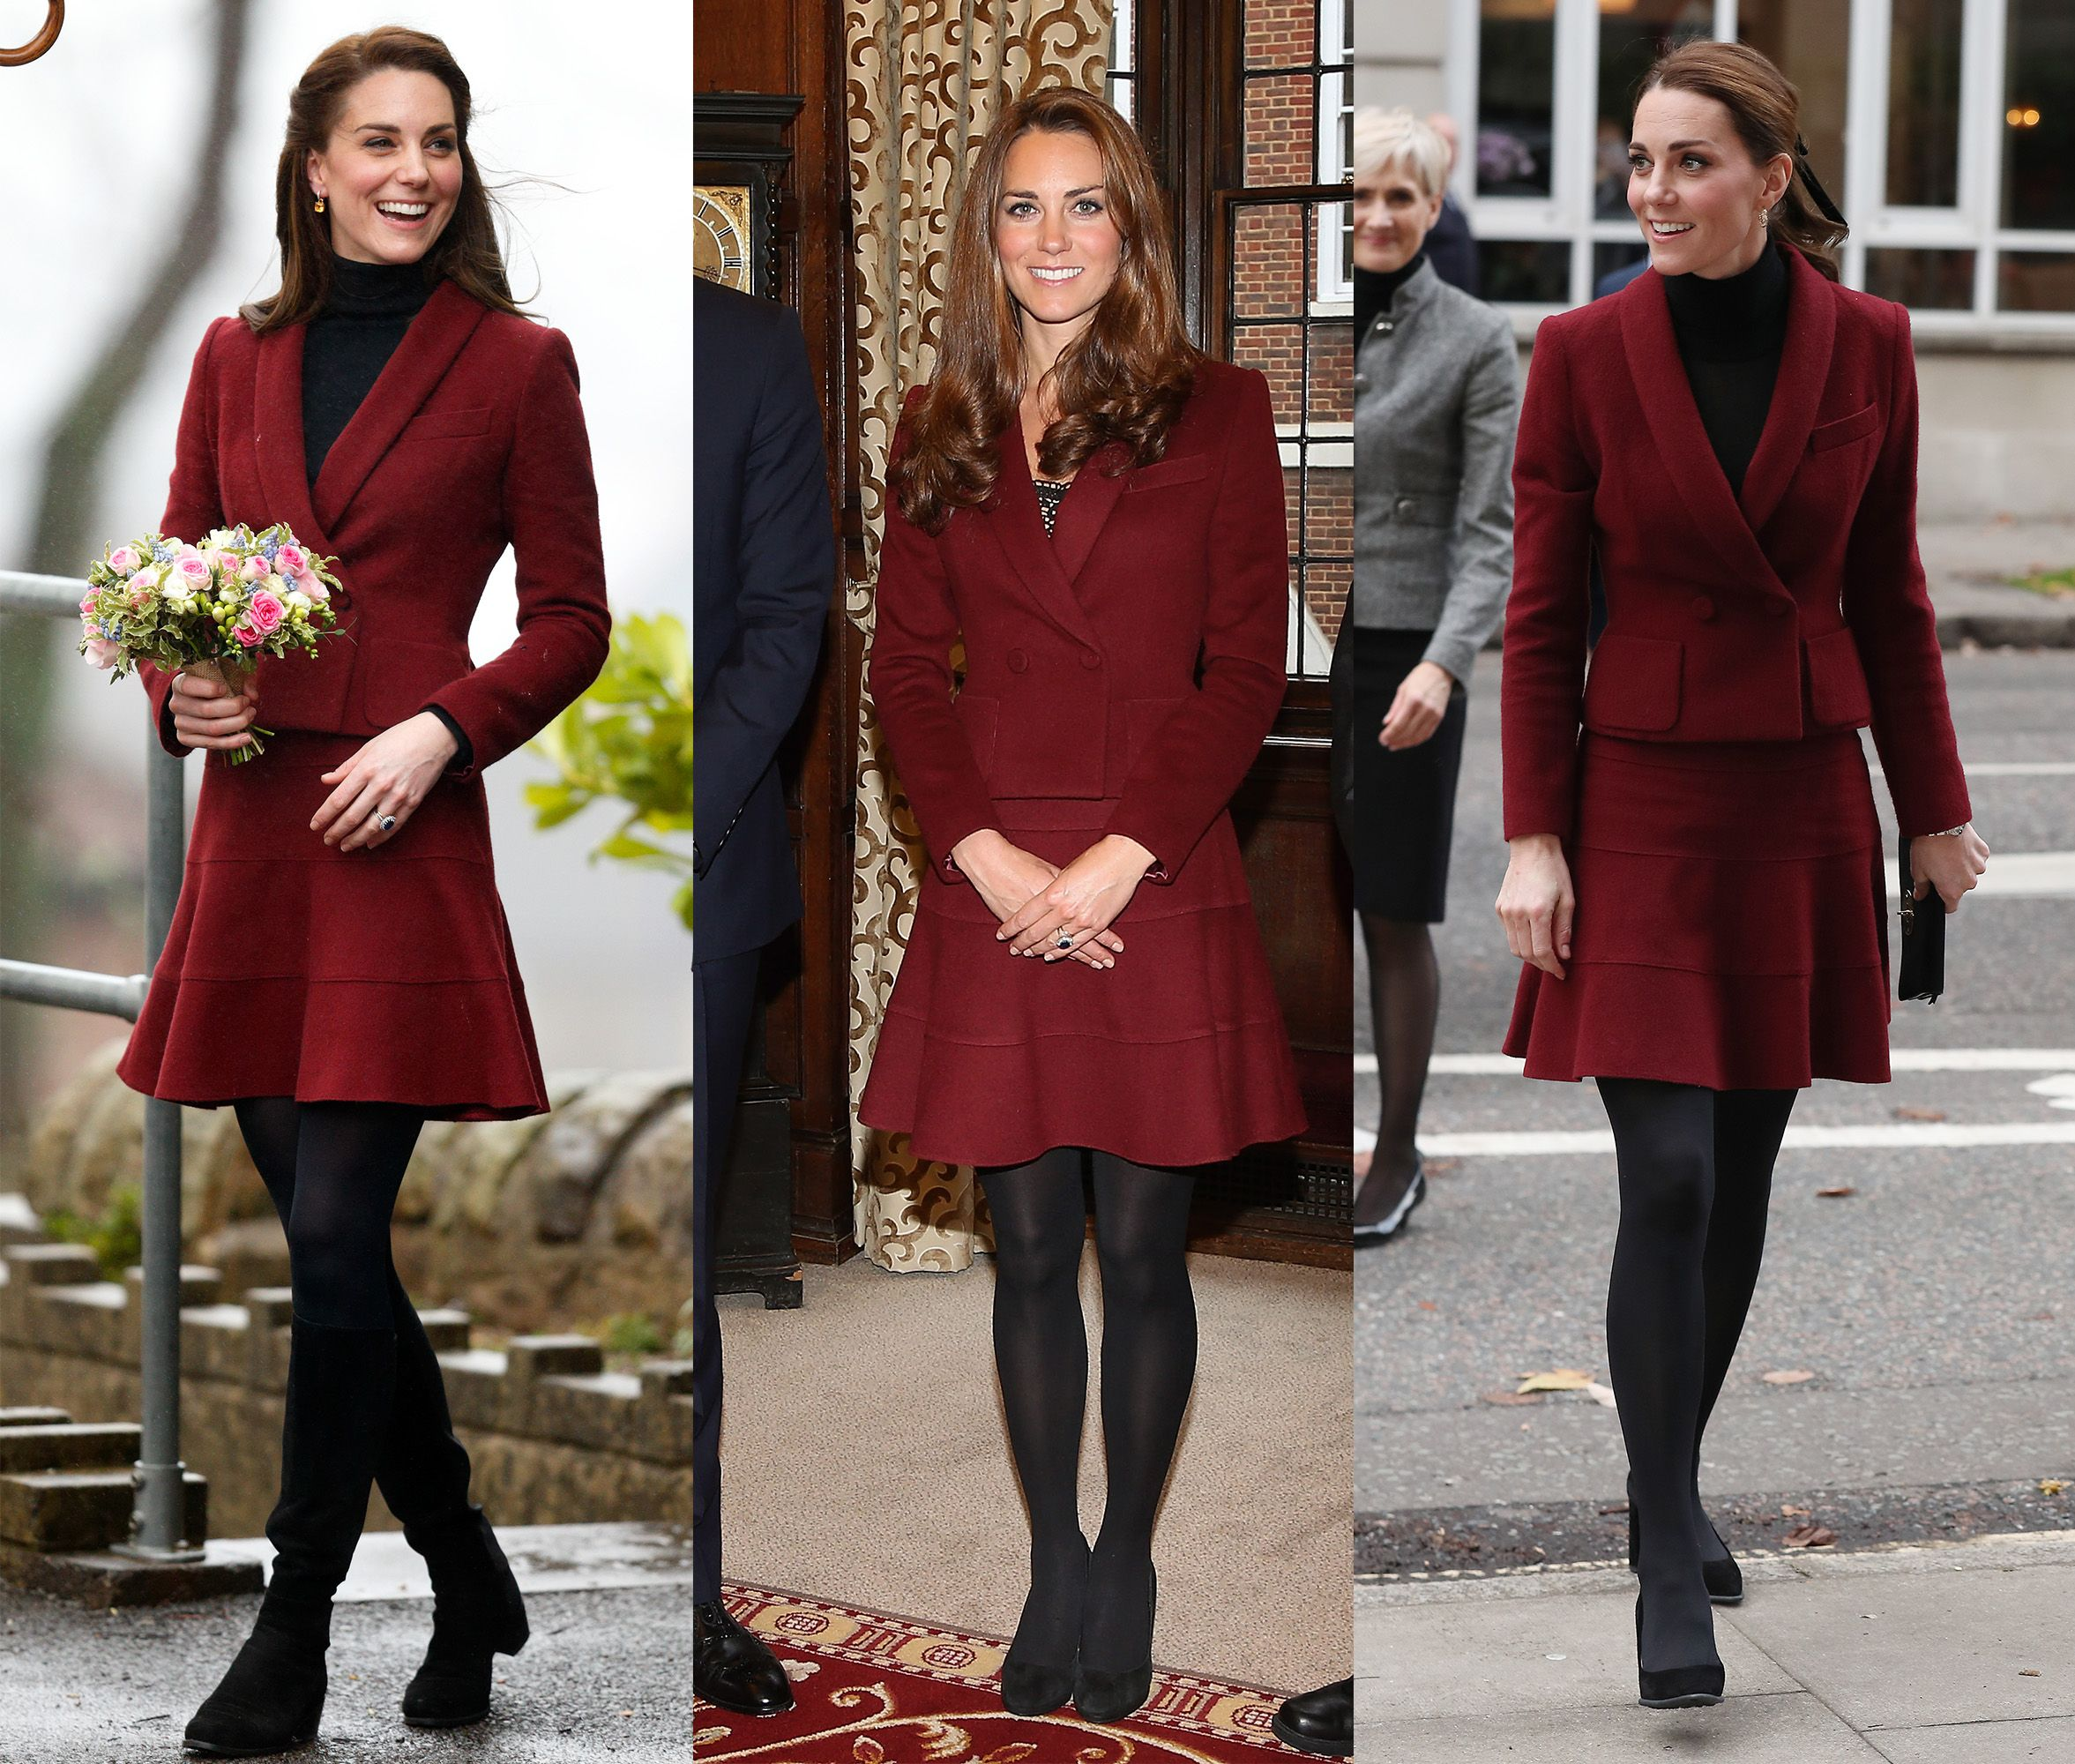 095efe179ea5d Kate Middleton's Best Repeat Outfits - Duchess of Cambridge ...